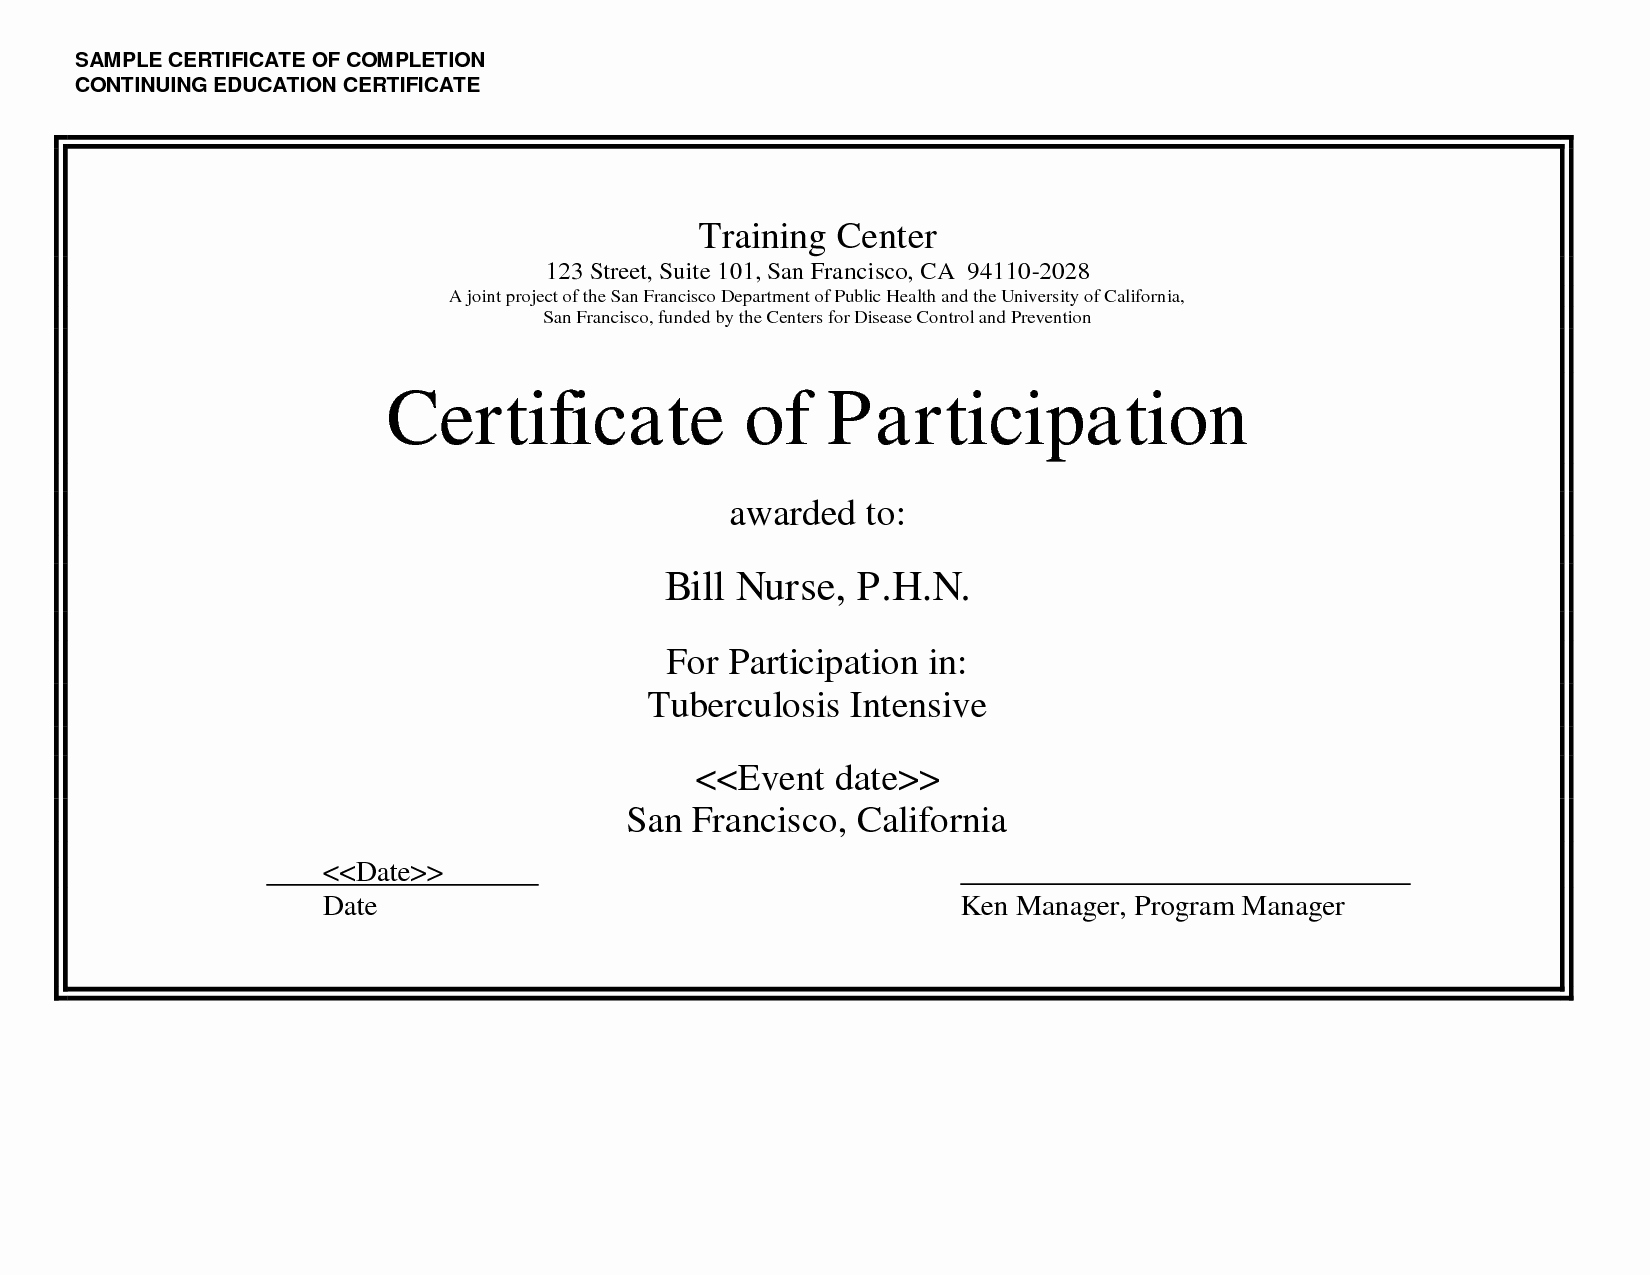 Continuing Education Certificate Template Free Luxury Sample Certificate Of Pletion Continuing Education